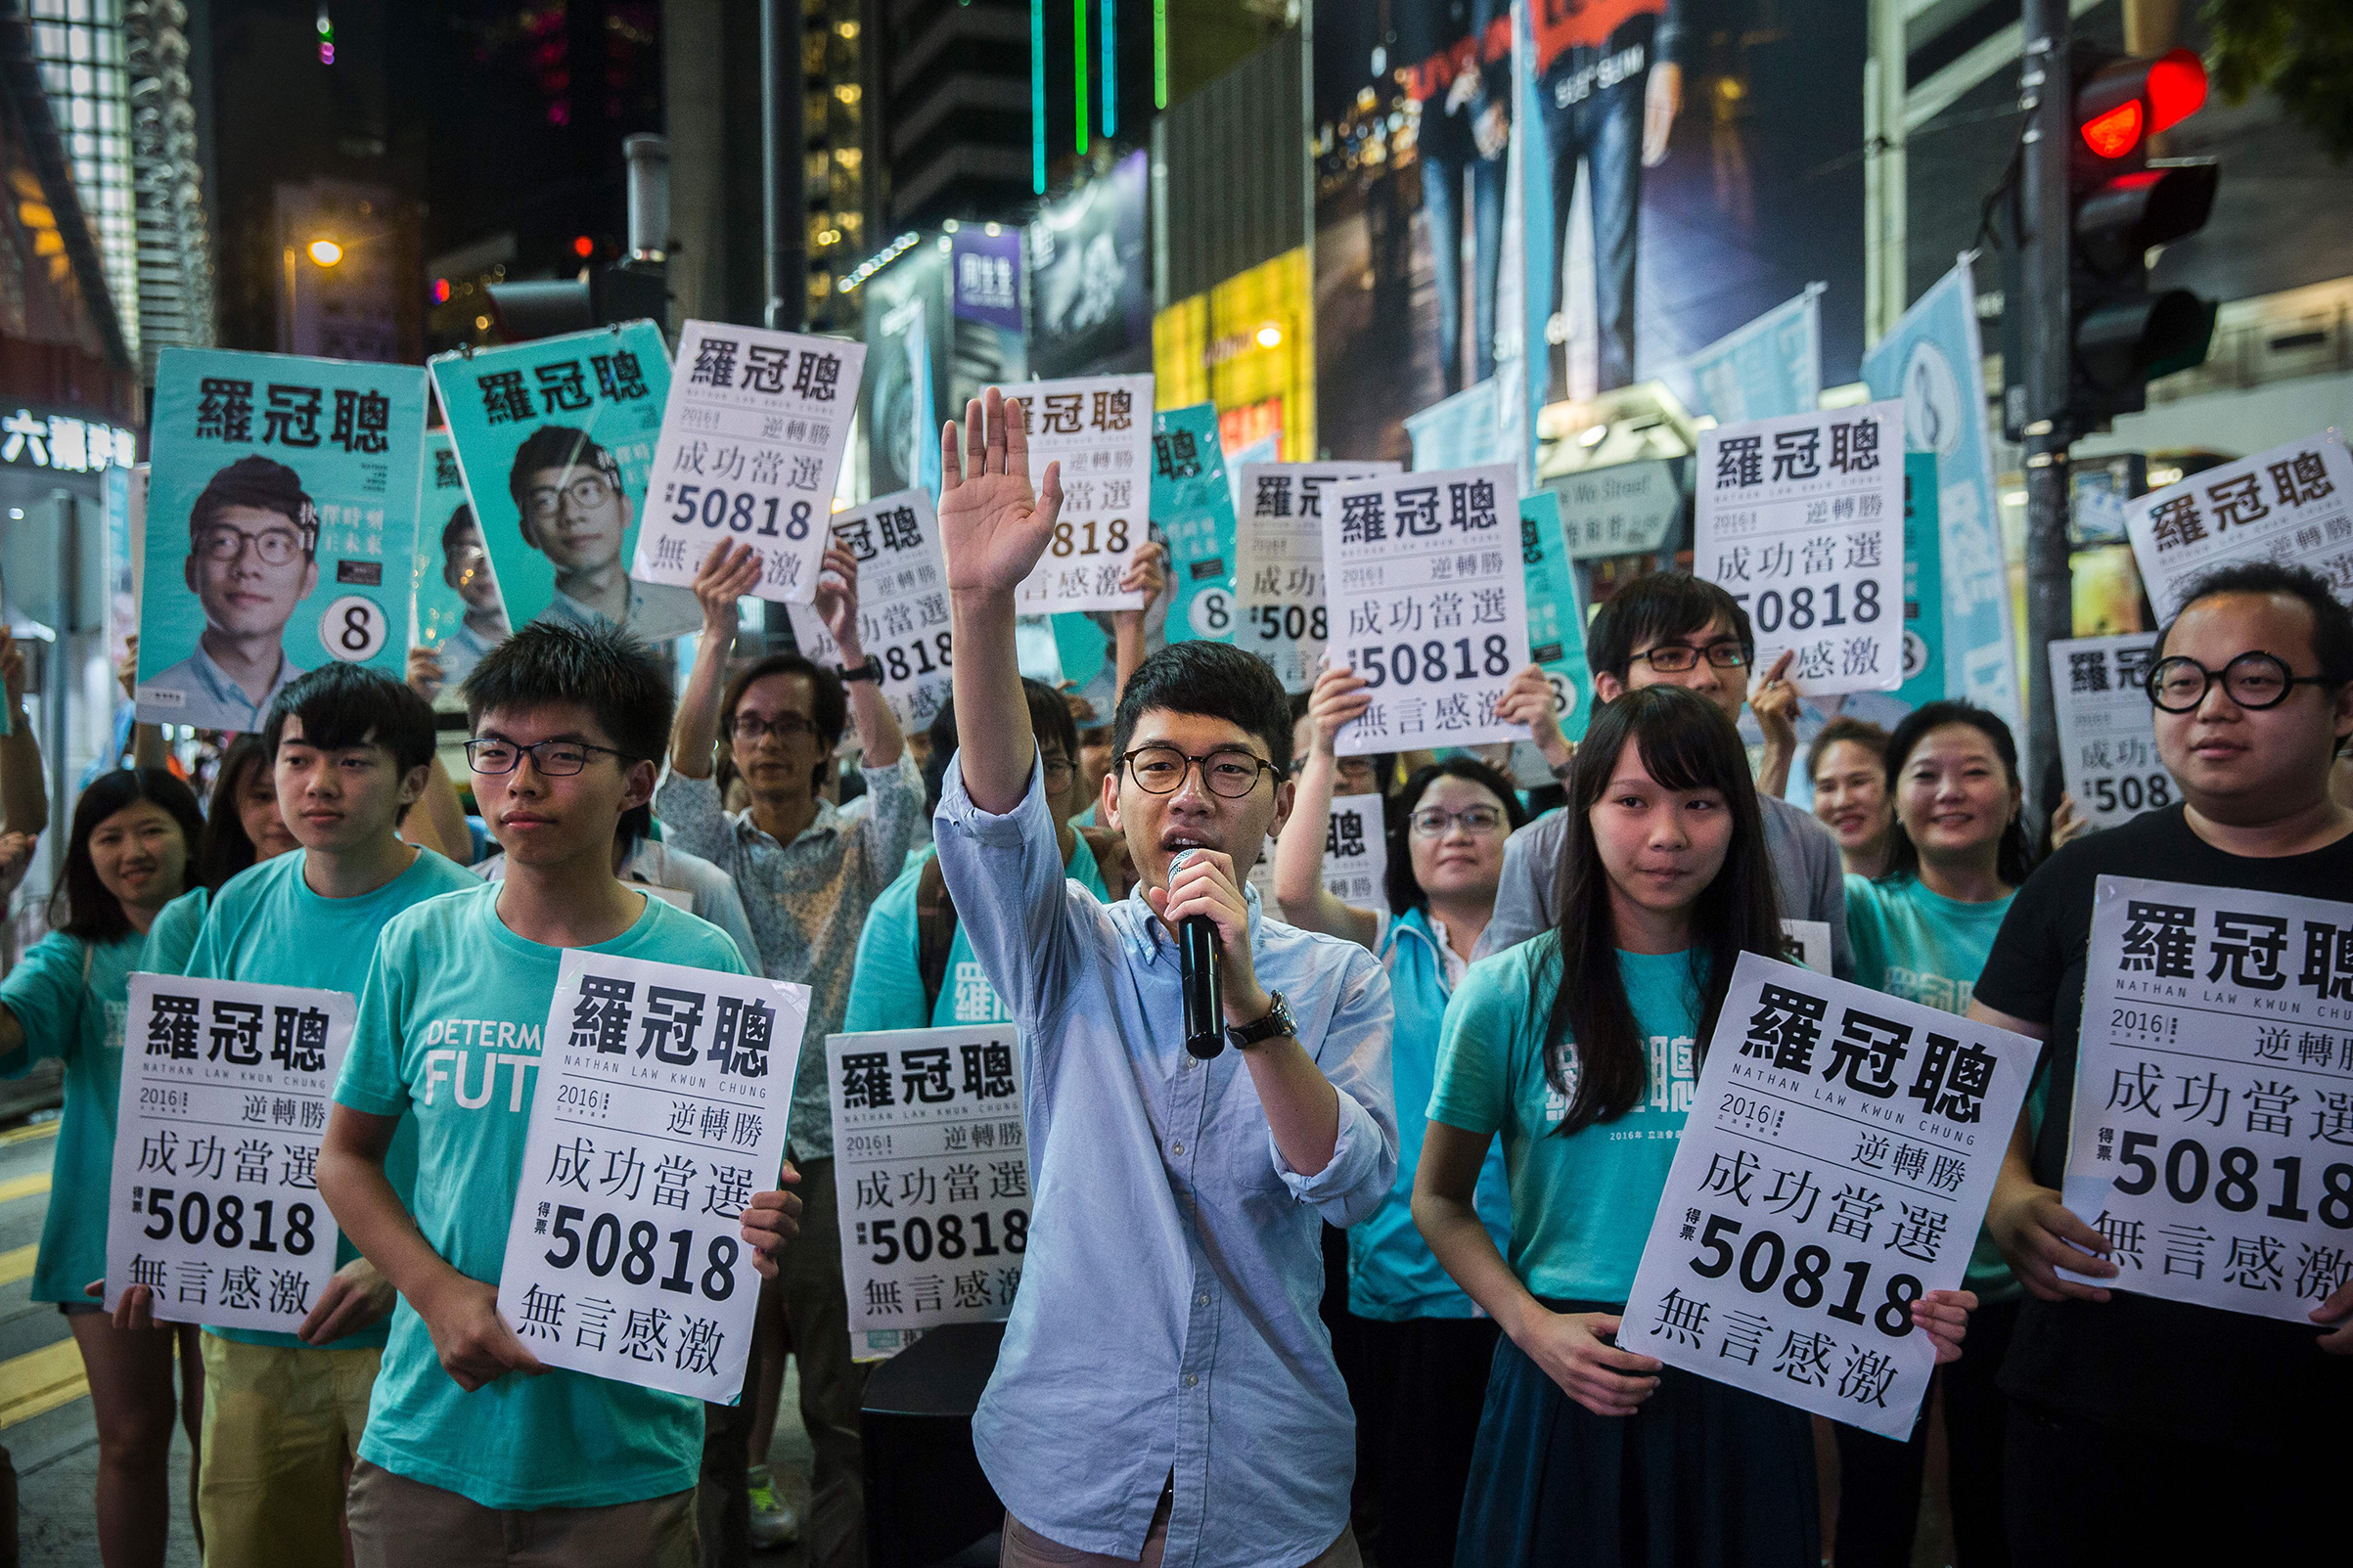 Nathan Law, center, speaks at a rally with Jousha Wong, to his right, and supporters in Causeway Bay following Law's win in the Legislative Council election in Hong Kong on Sept. 5, 2016. Hong Kong's youngest ever legislator at the age of 23, Law represented a new generation of Hongkongers advocating a break from Beijing.